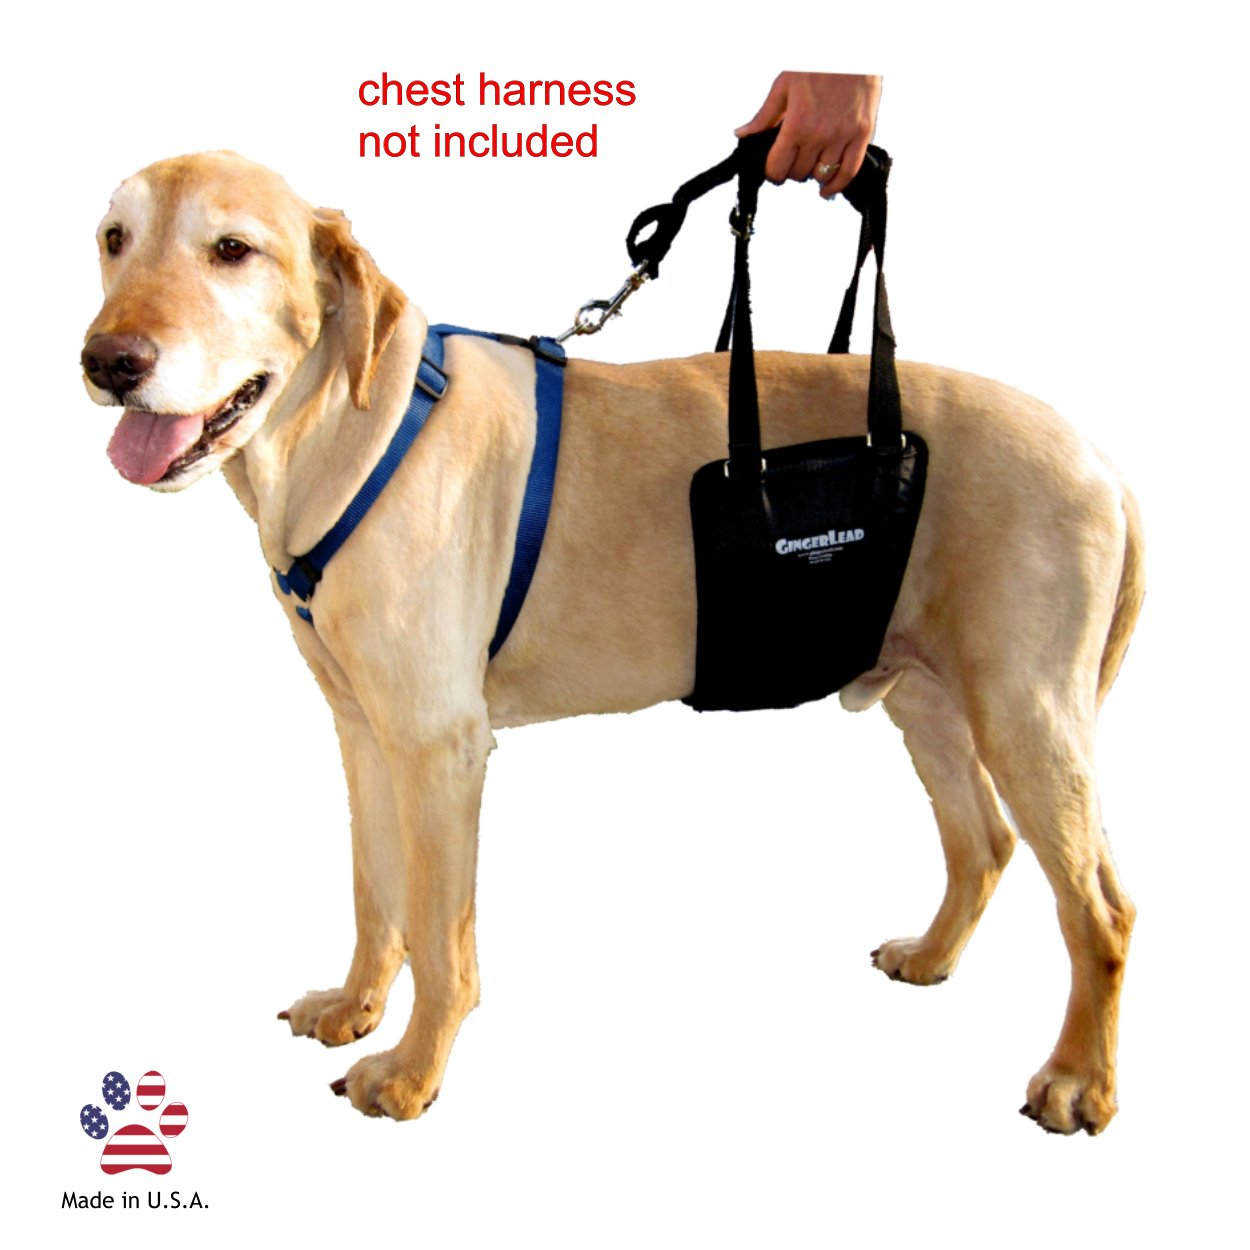 GingerLead Dog Support & Rehabilitation Harness Medium/Large Dog Sling with Stay on Straps; Helps Older, Disabled or Injured Dogs Walk. Fits Medium Male and Female Dogs and Large Male Dogs by GingerLead